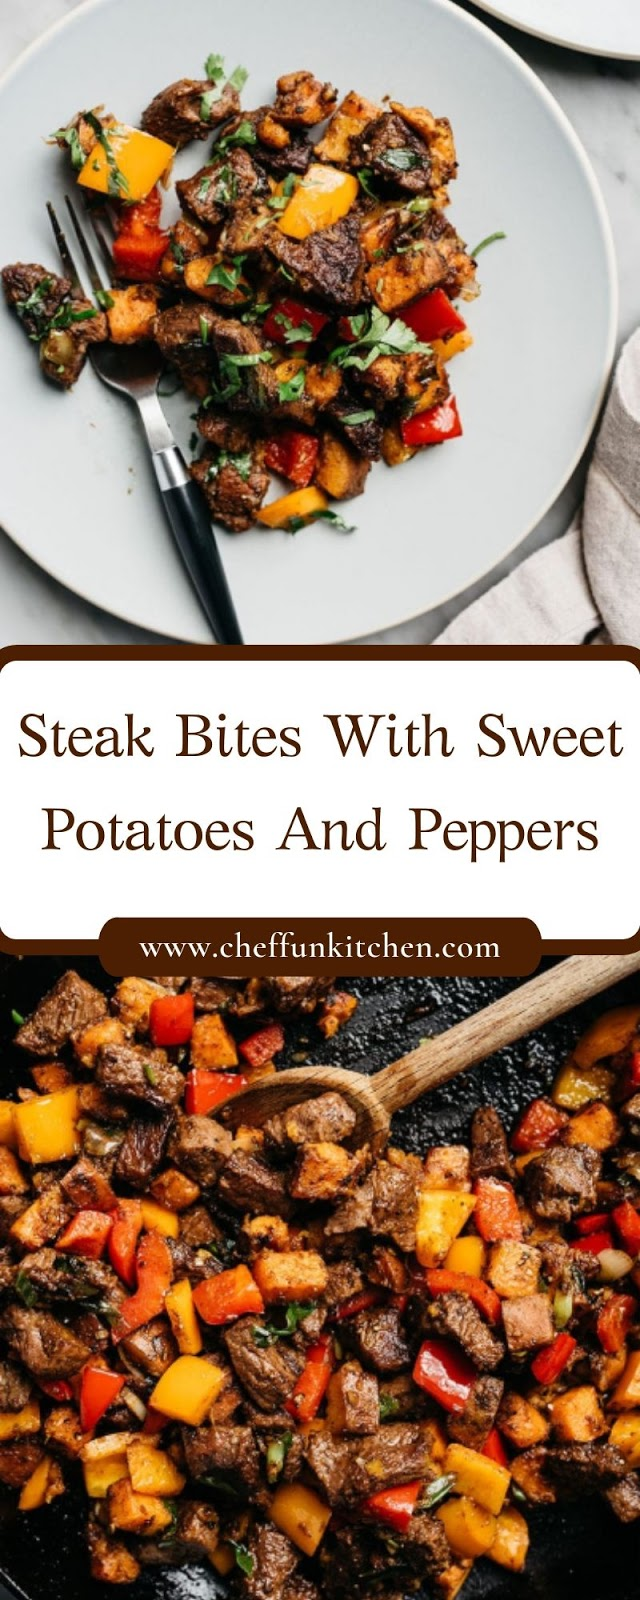 Steak Bites With Sweet Potatoes And Peppers